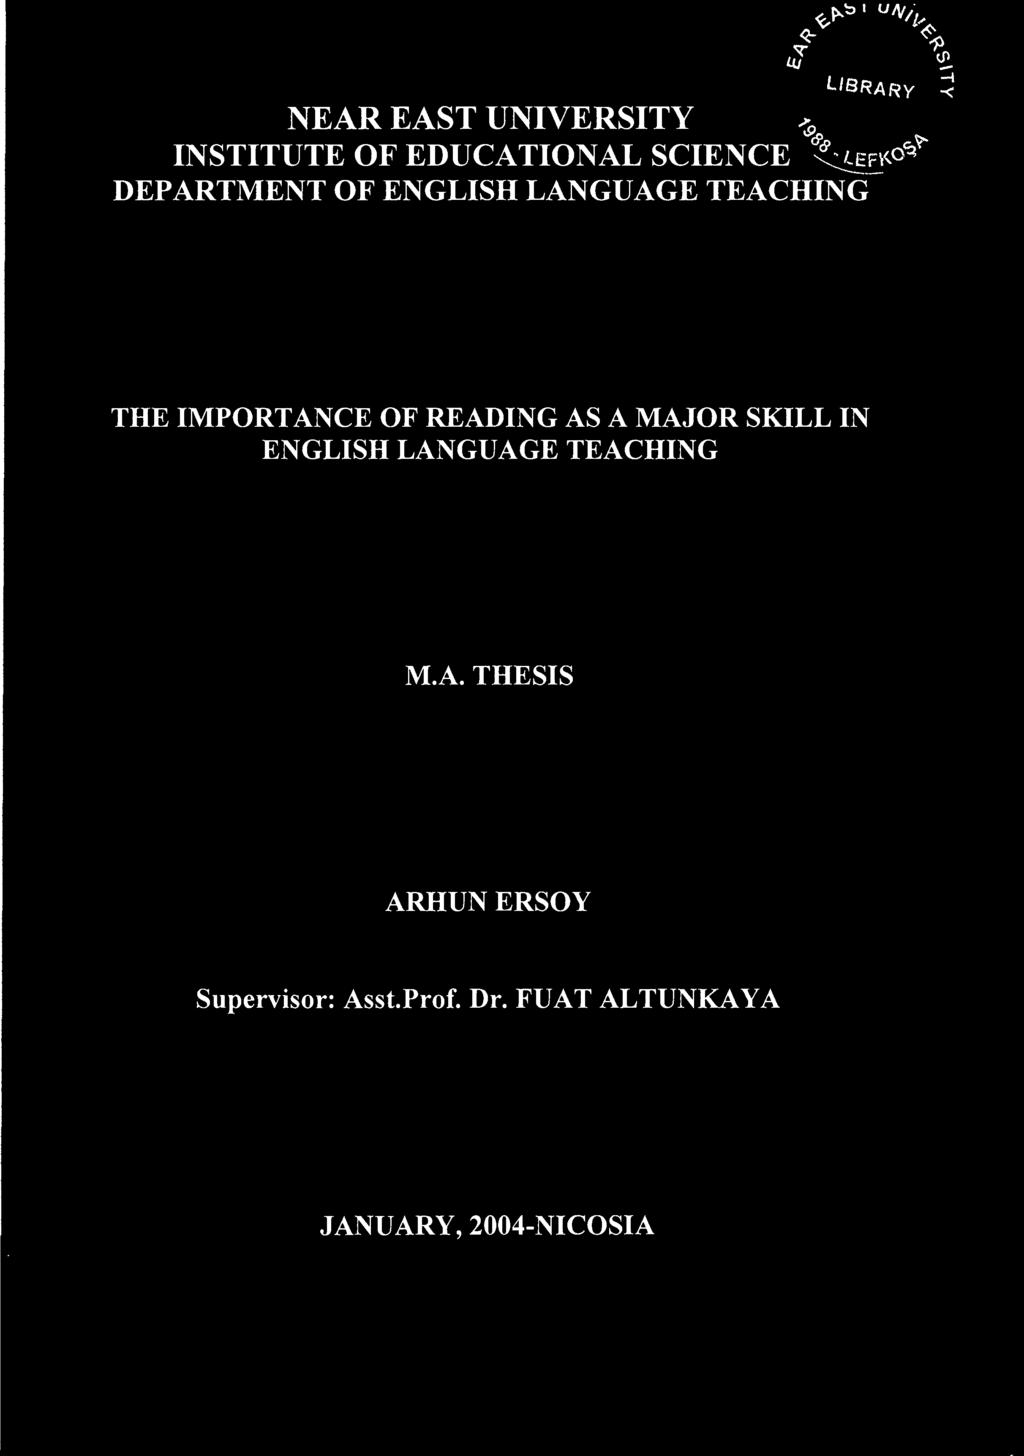 AS A MAJOR SKILL IN ENGLISH LANGUAGE TEACHING M.A. THESIS ARHUNERSOY Supervisor: Asst.